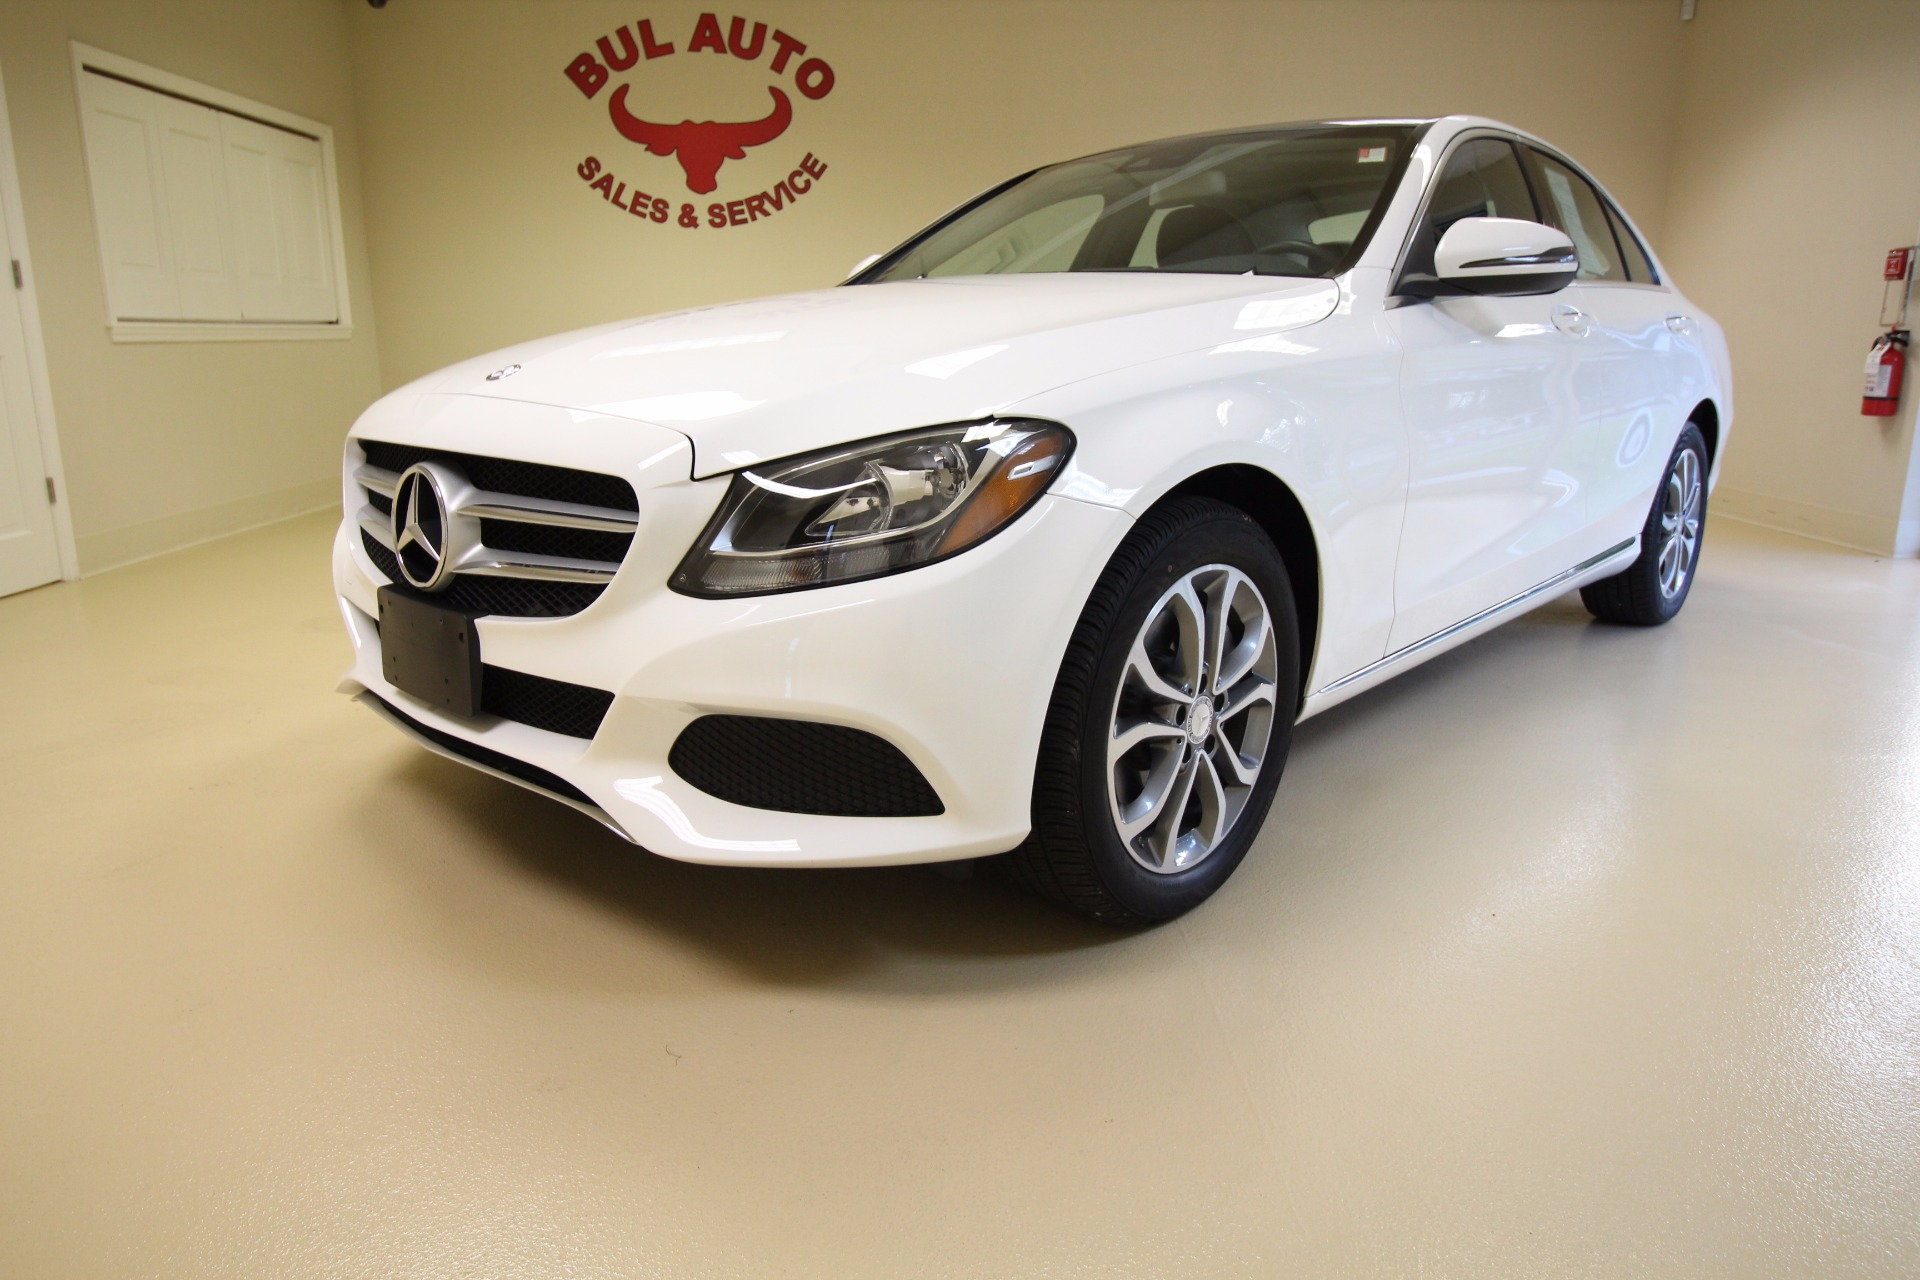 Mercedes benz dealers syracuse ny fiat world test drive for Syracuse mercedes benz dealers